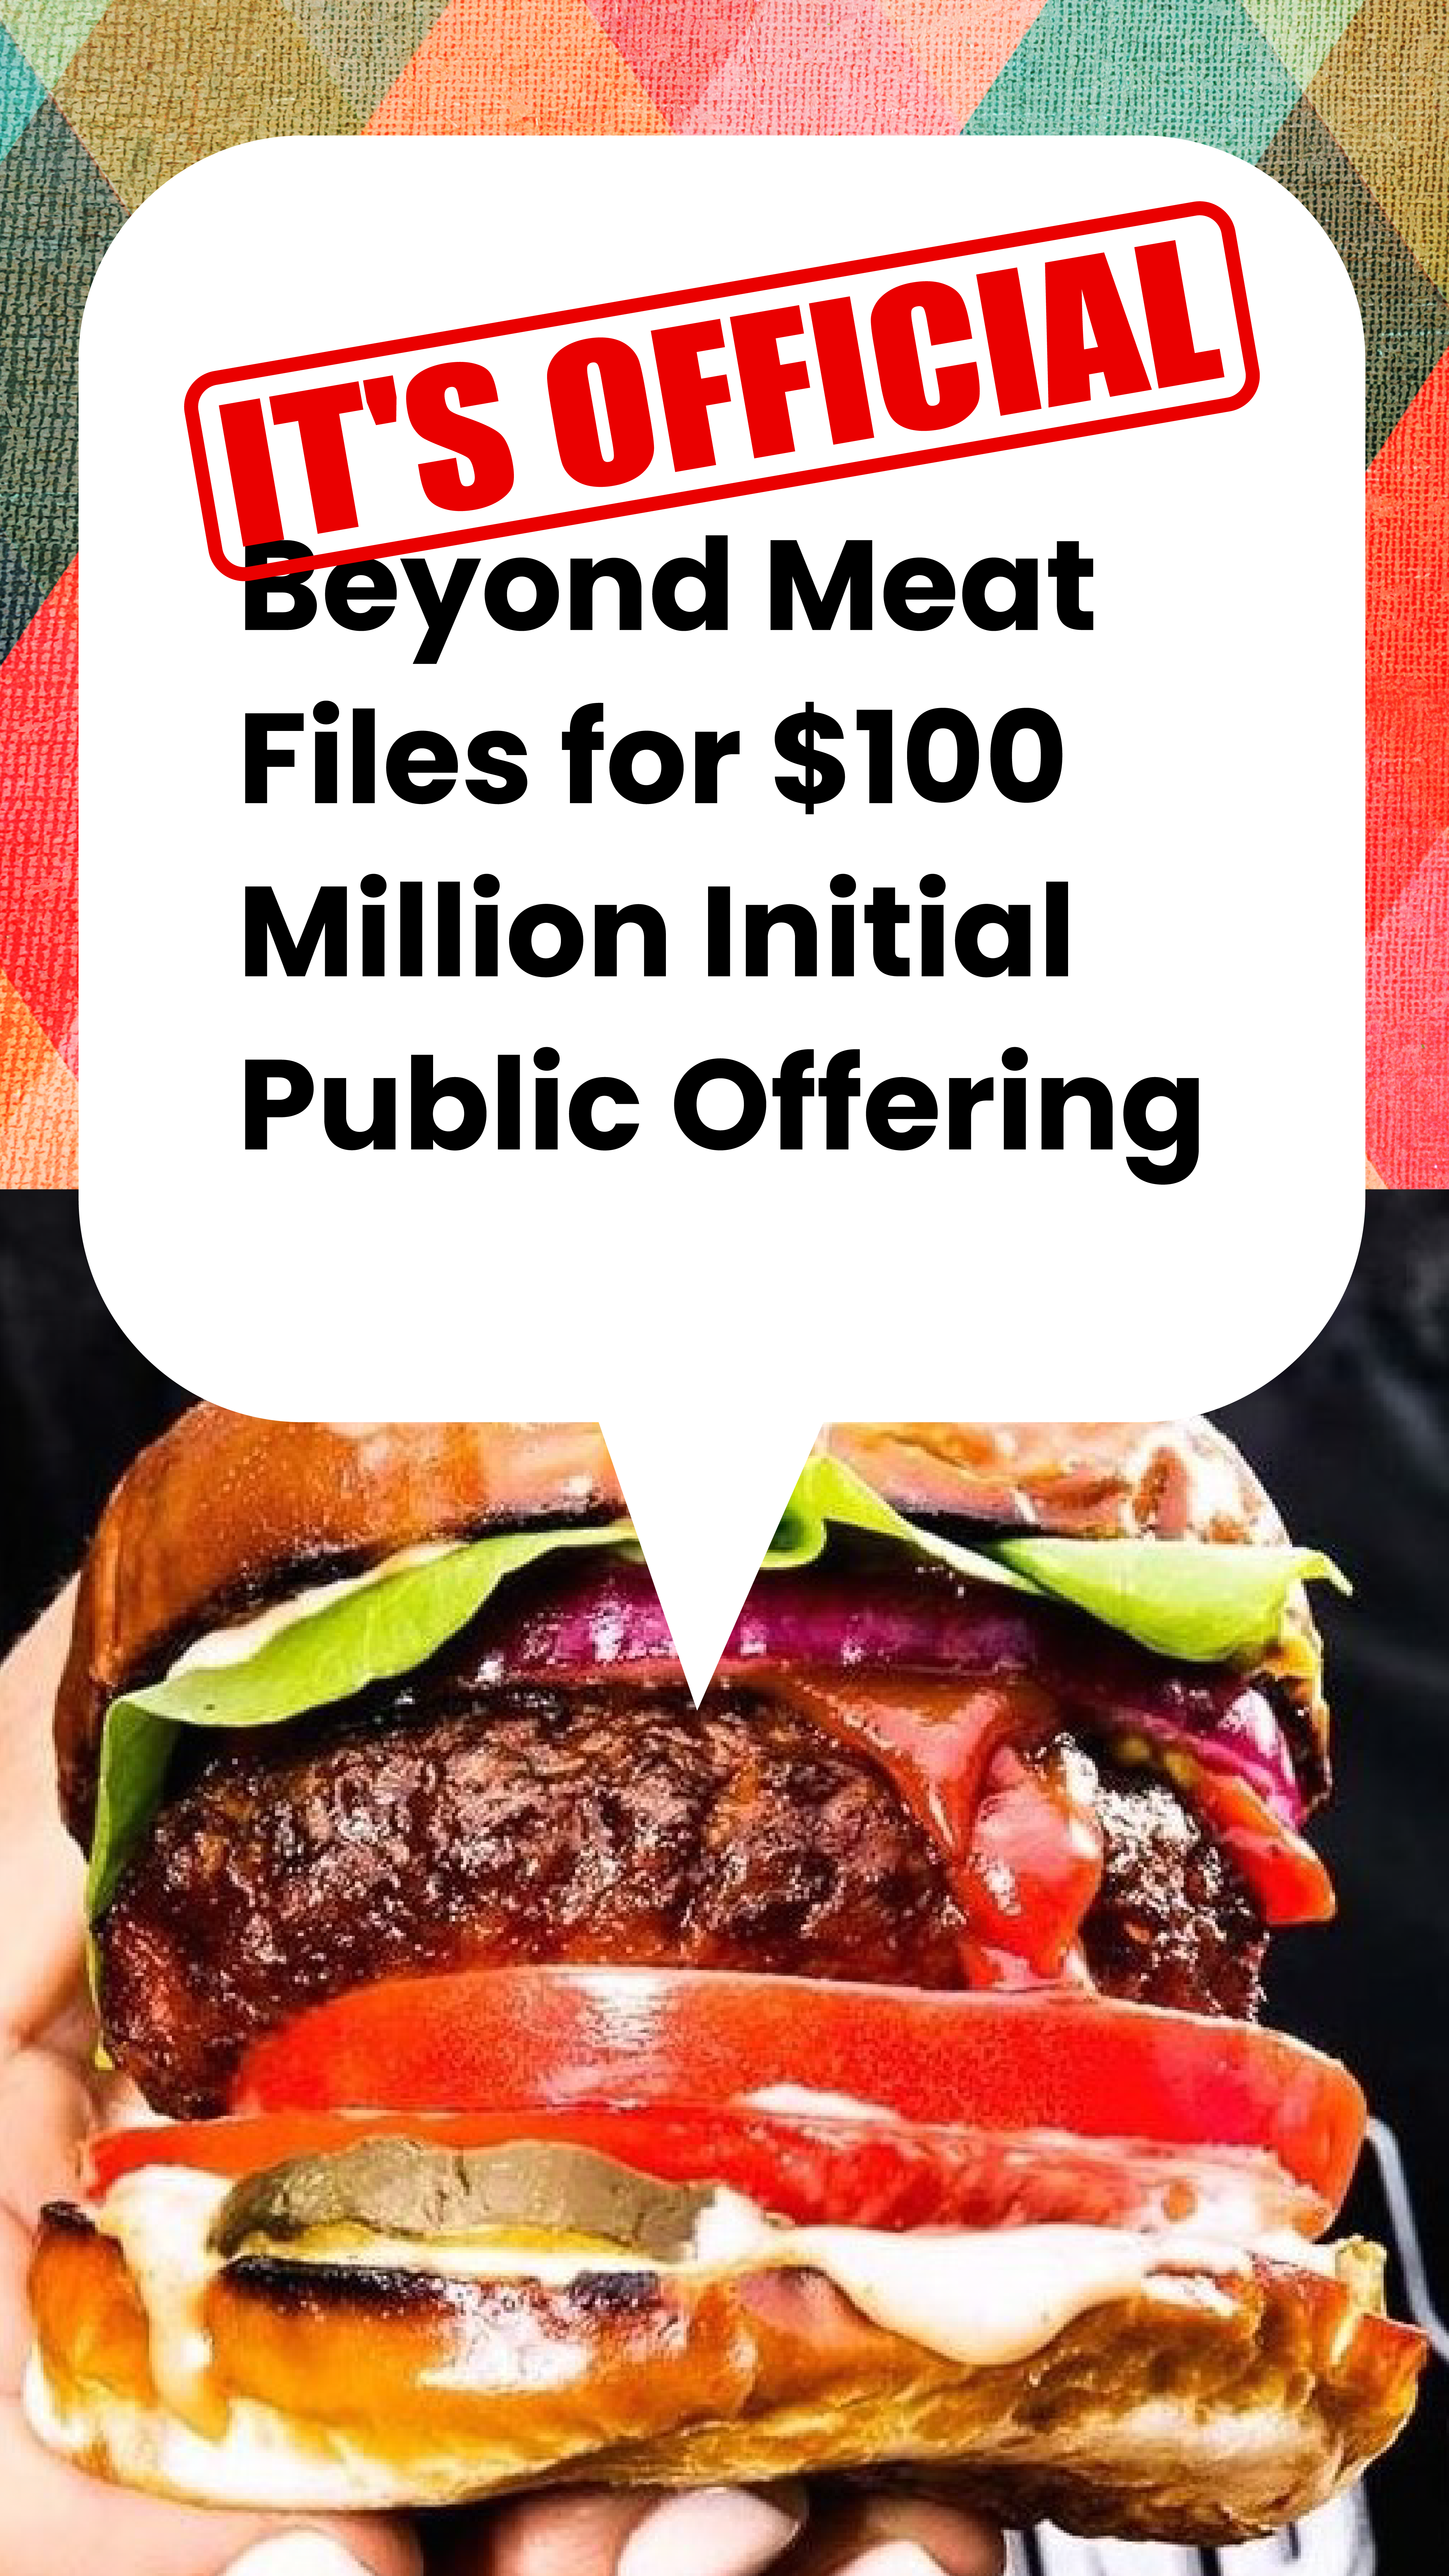 It S Official Beyond Meat Files For 100 Million Initial Public Offering Going Vegan Meat Mcdonalds Chicken